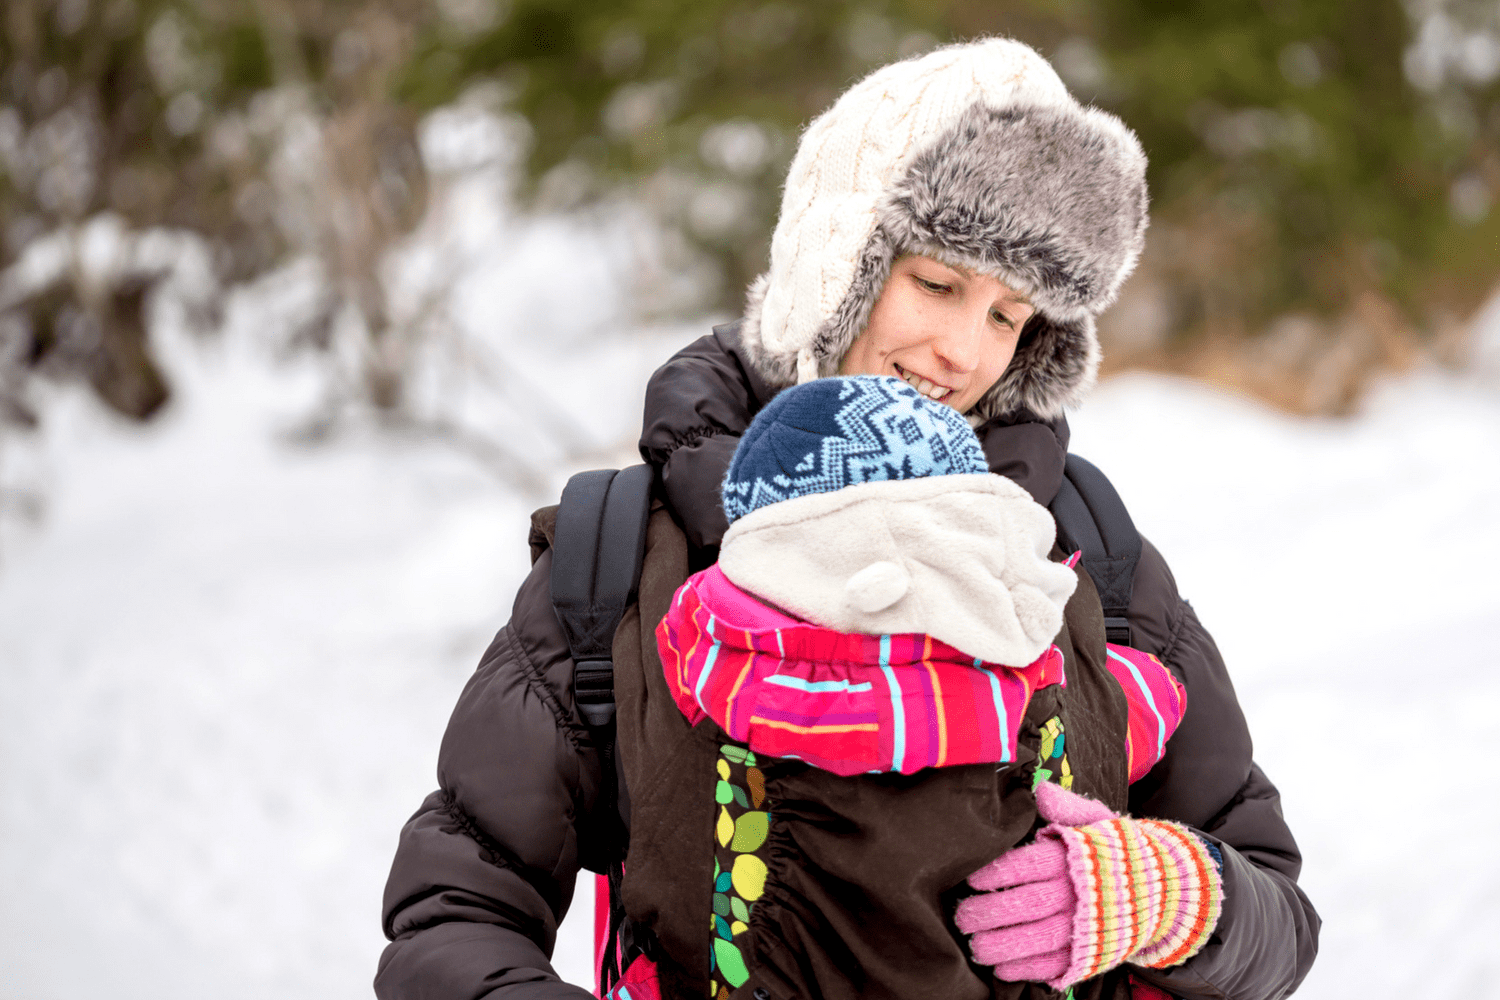 Baby carrier covers review. The best covers for winter or rain to keep your baby safe and comfortable.